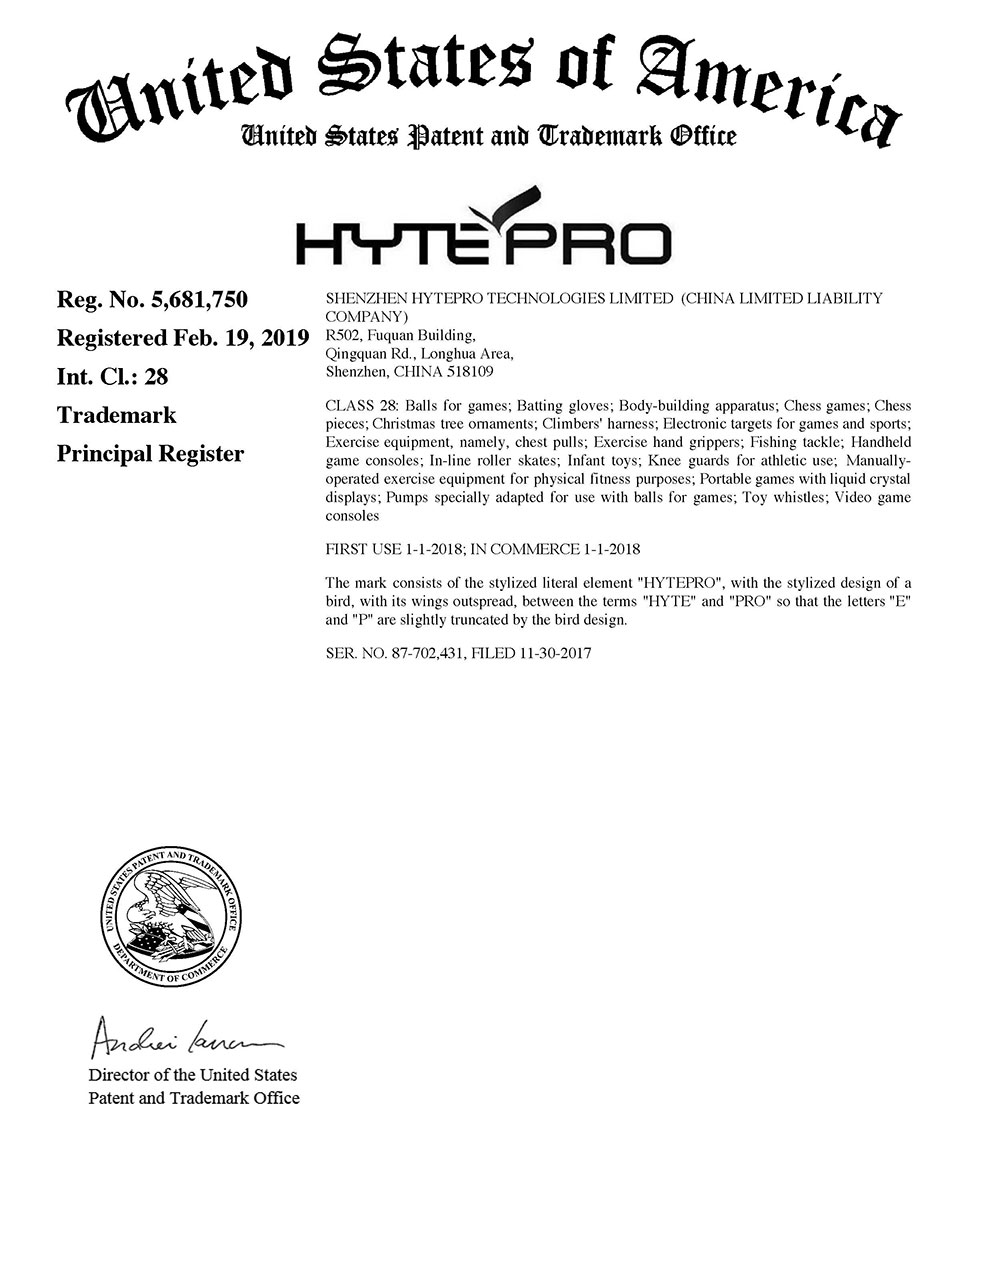 HytePro magnetic connectors